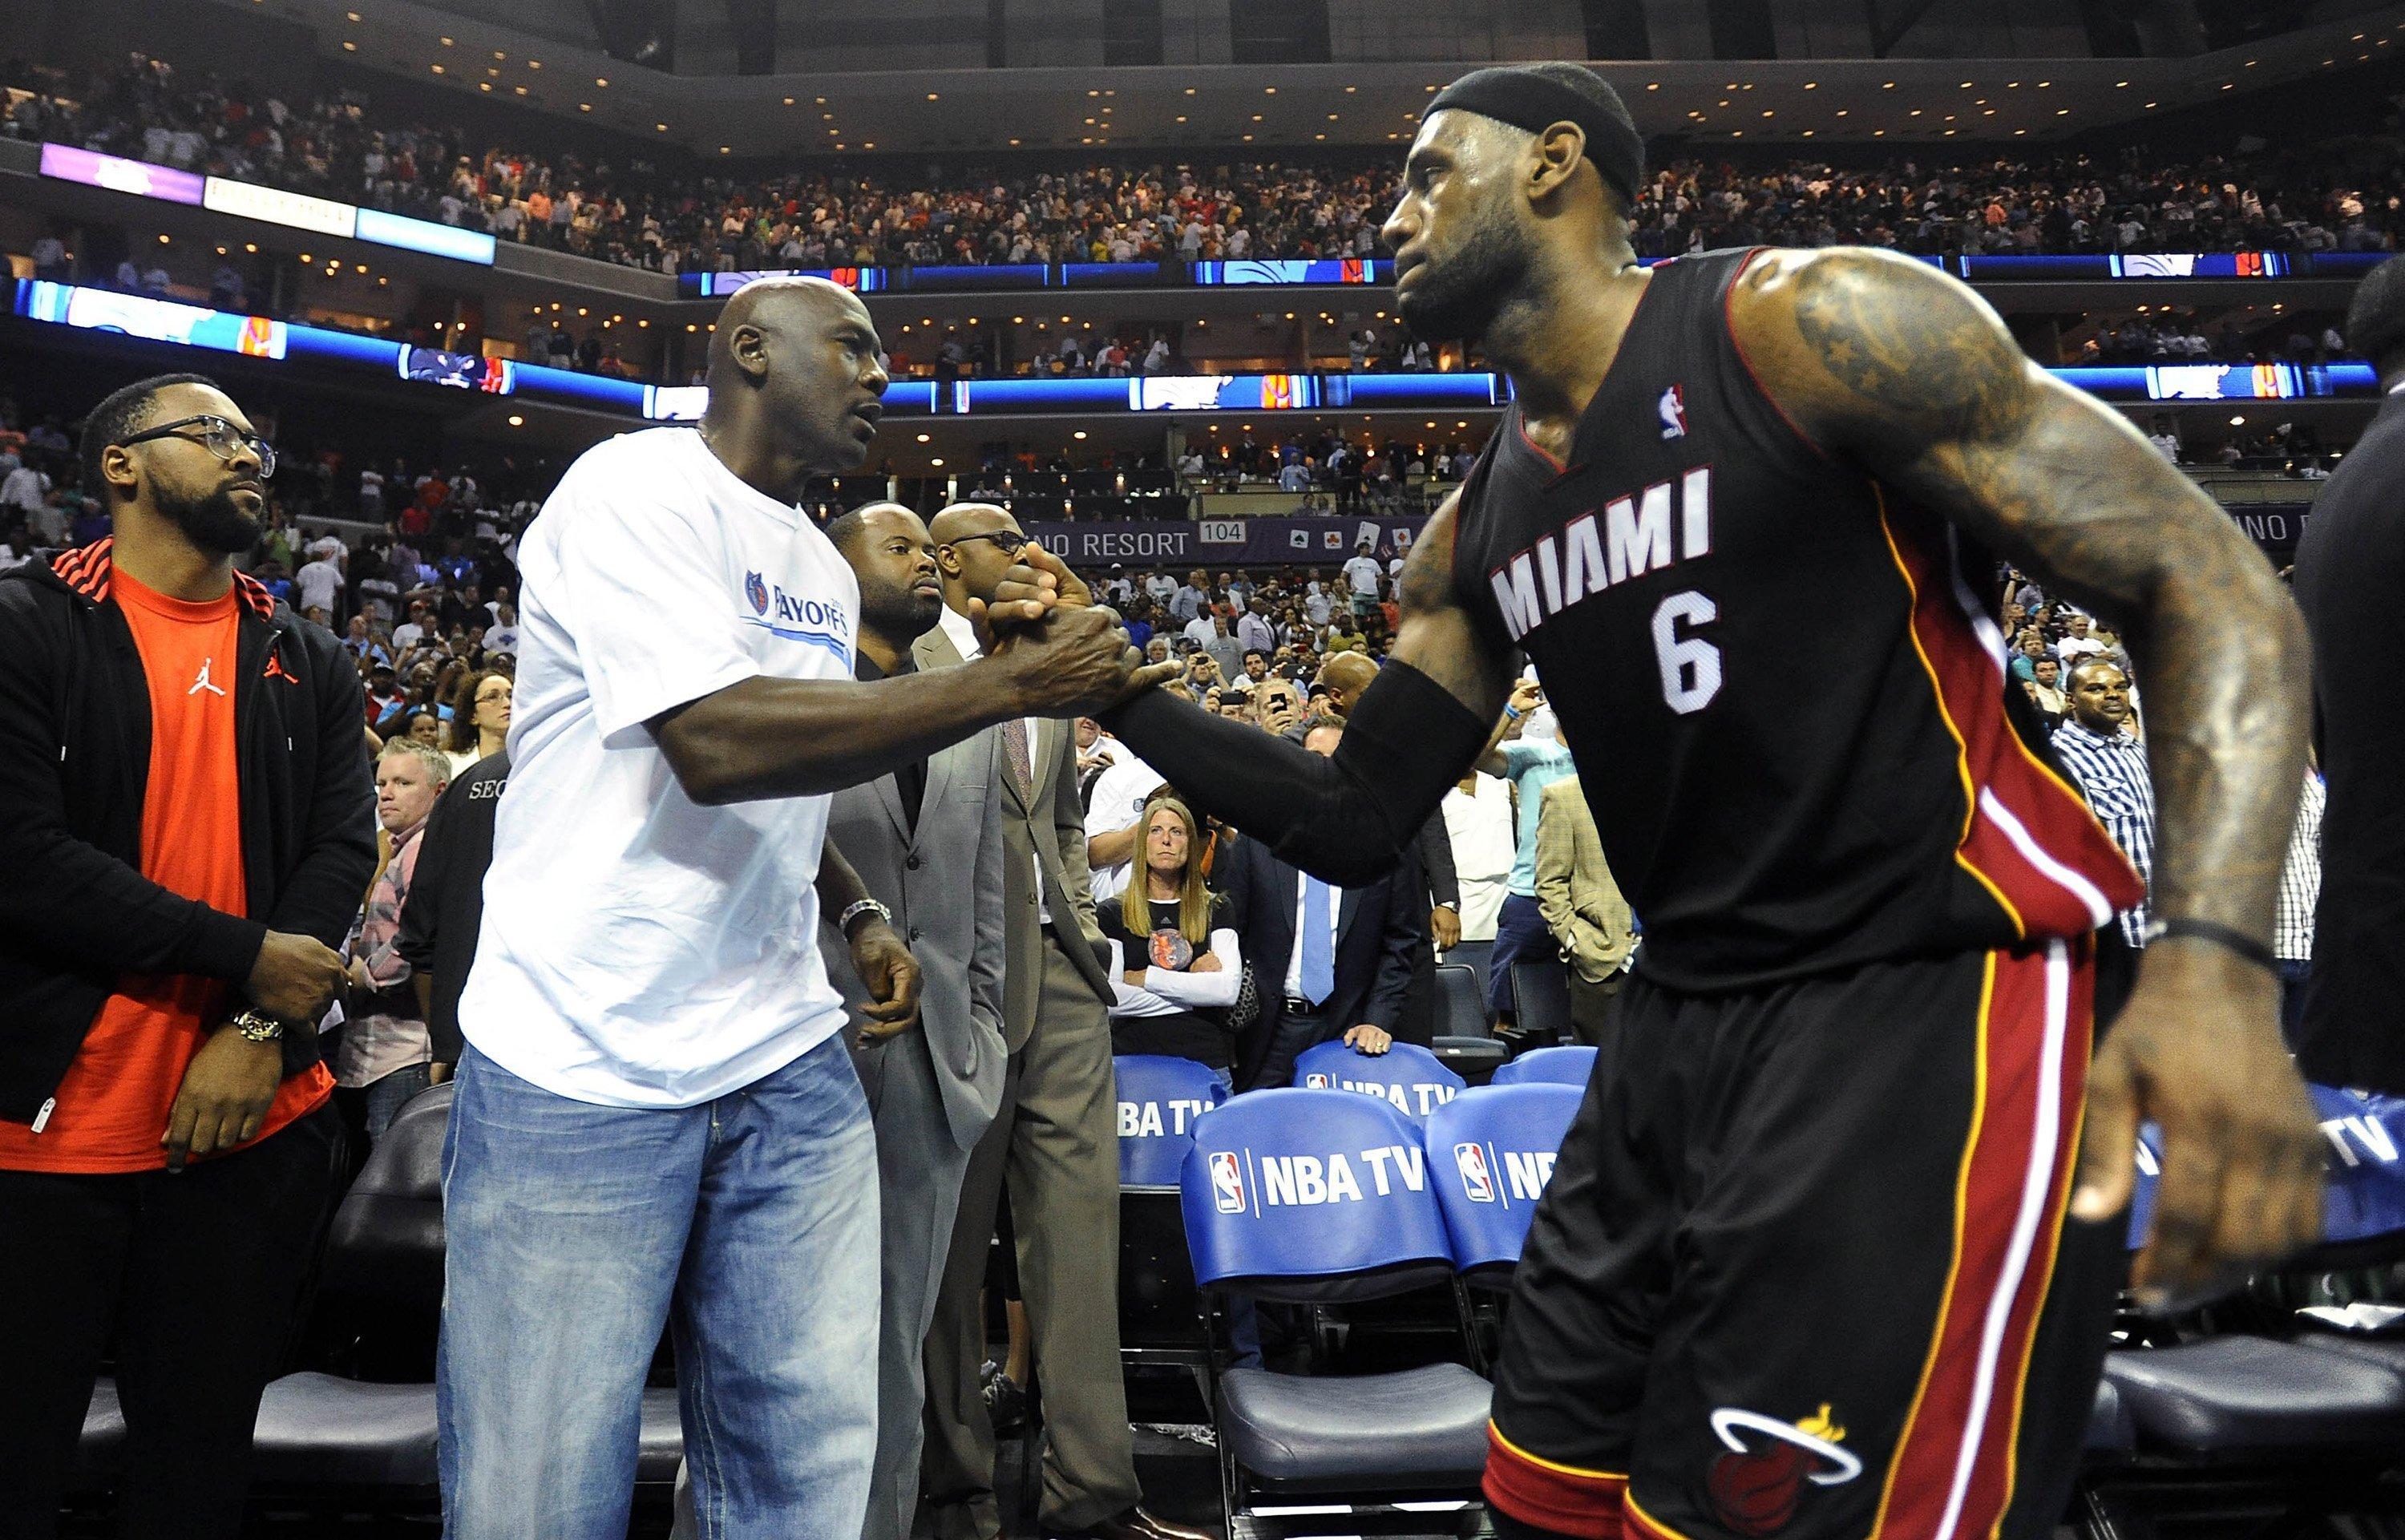 Charlotte Bobcats' team owner Michael Jordan shakes hands with Miami Heat forward LeBron James (6), after the Heat defeated the Bobcats, 109-98, in Game 4 of the NBA Eastern Conference quarterfinals at Time Warner Cable Arena in Charlotte, N.C., Monday, April 28, 2014.